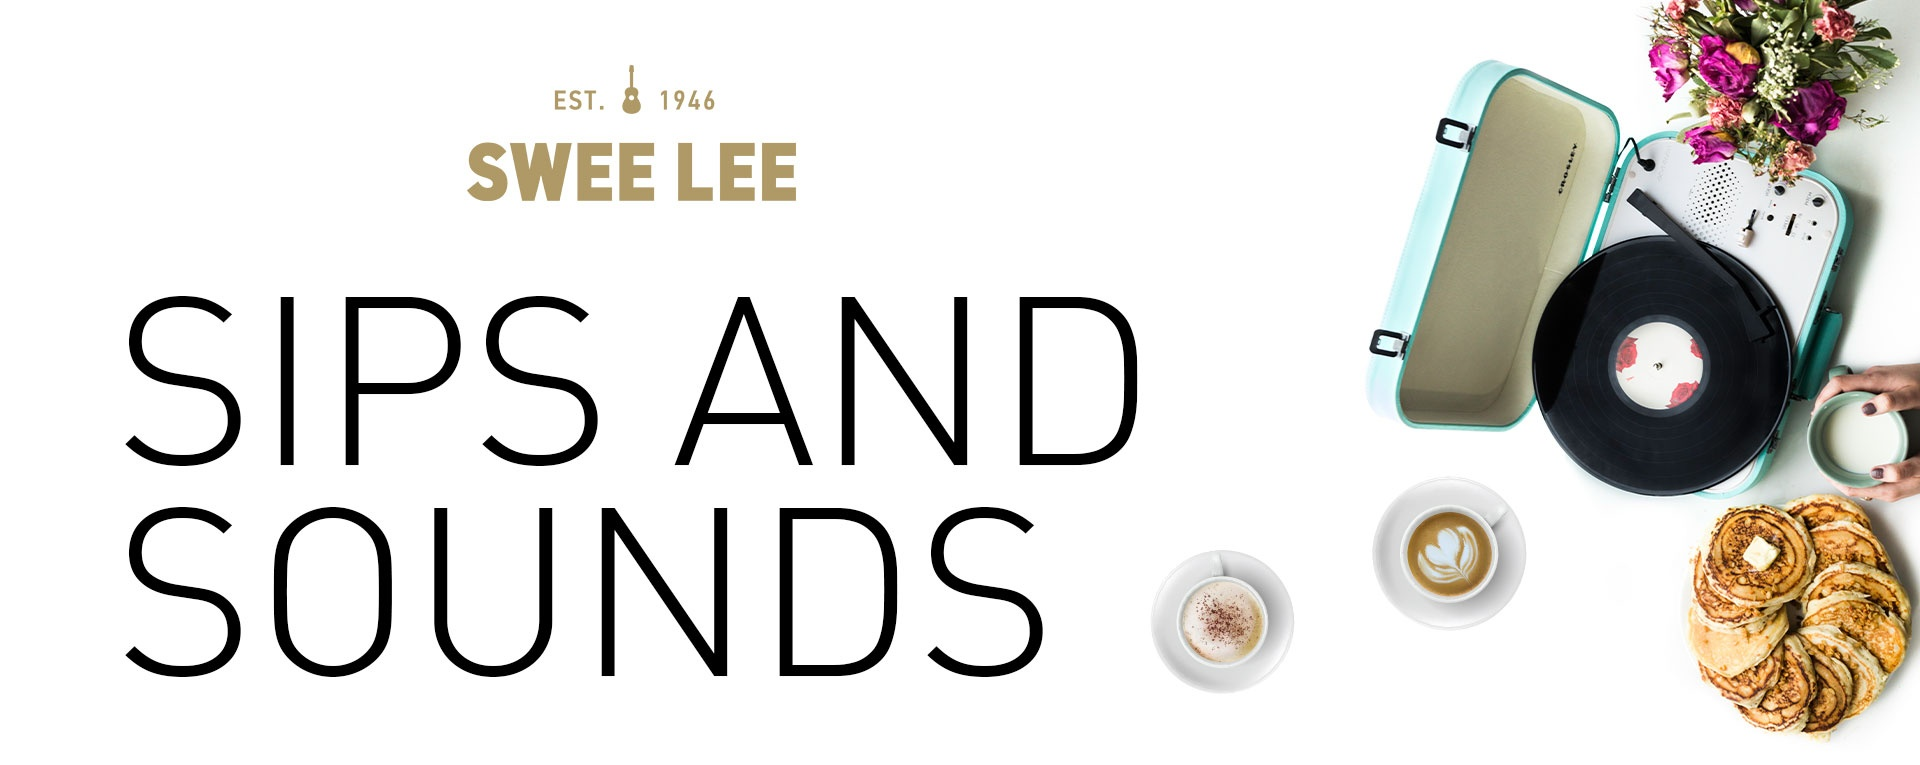 Sips and Sounds: Explore vinyl with Swee Lee Music